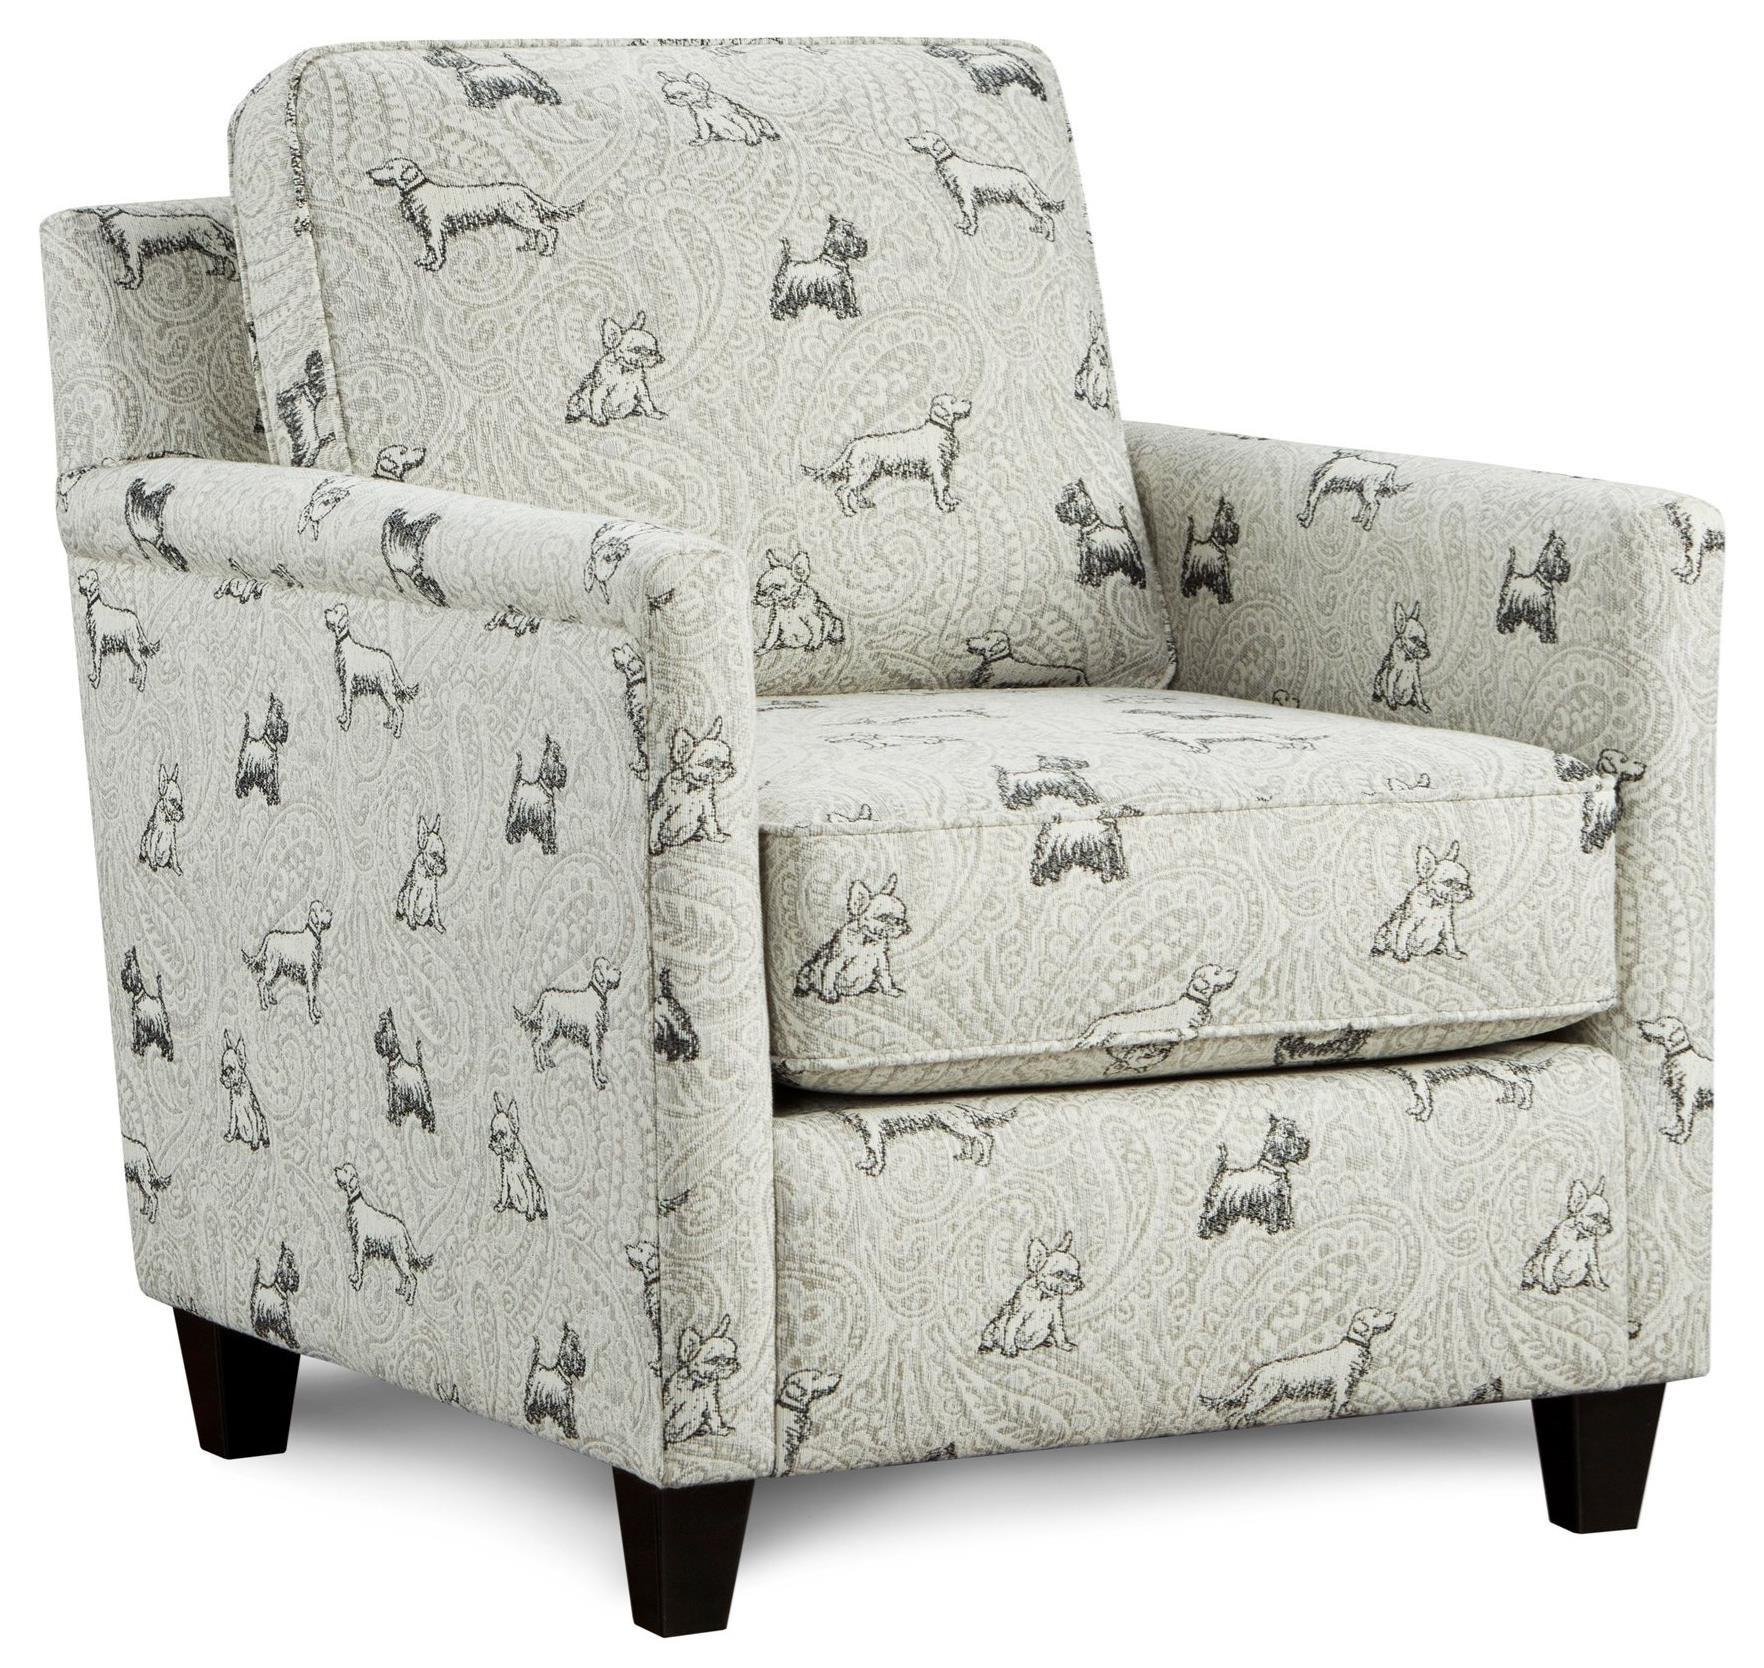 21-02 Accent Chair by Fusion Furniture at Prime Brothers Furniture